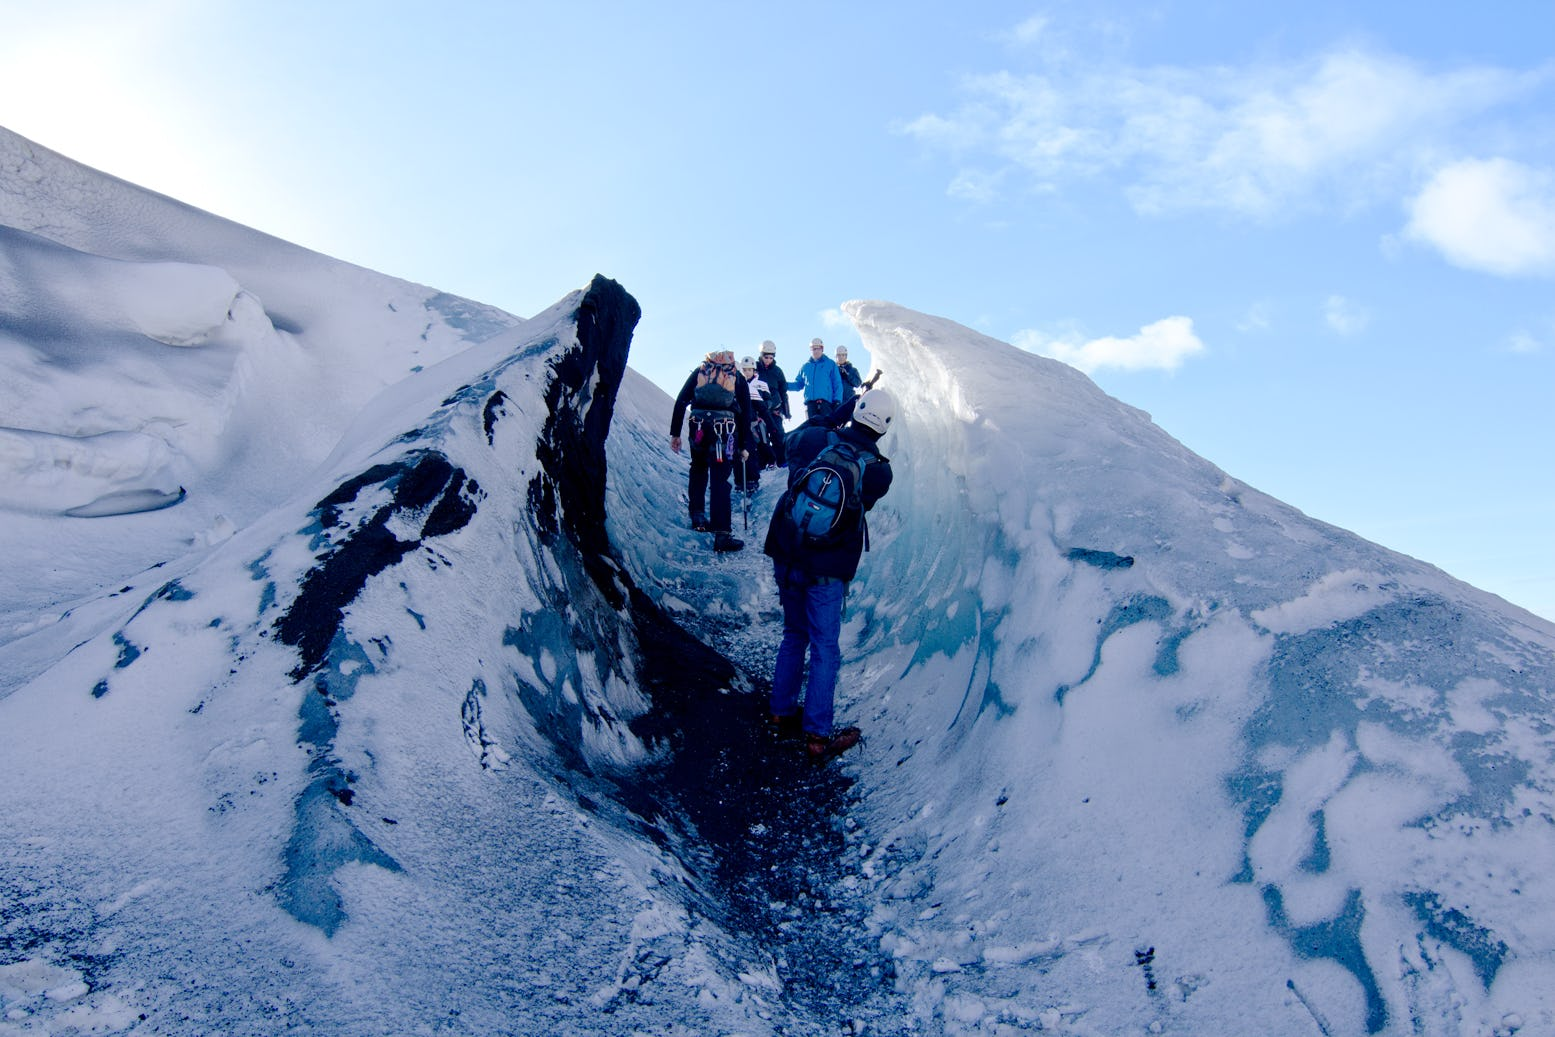 You will be dazzled by the incredibly intricate and all natural ice sculptures littered across the glacier.